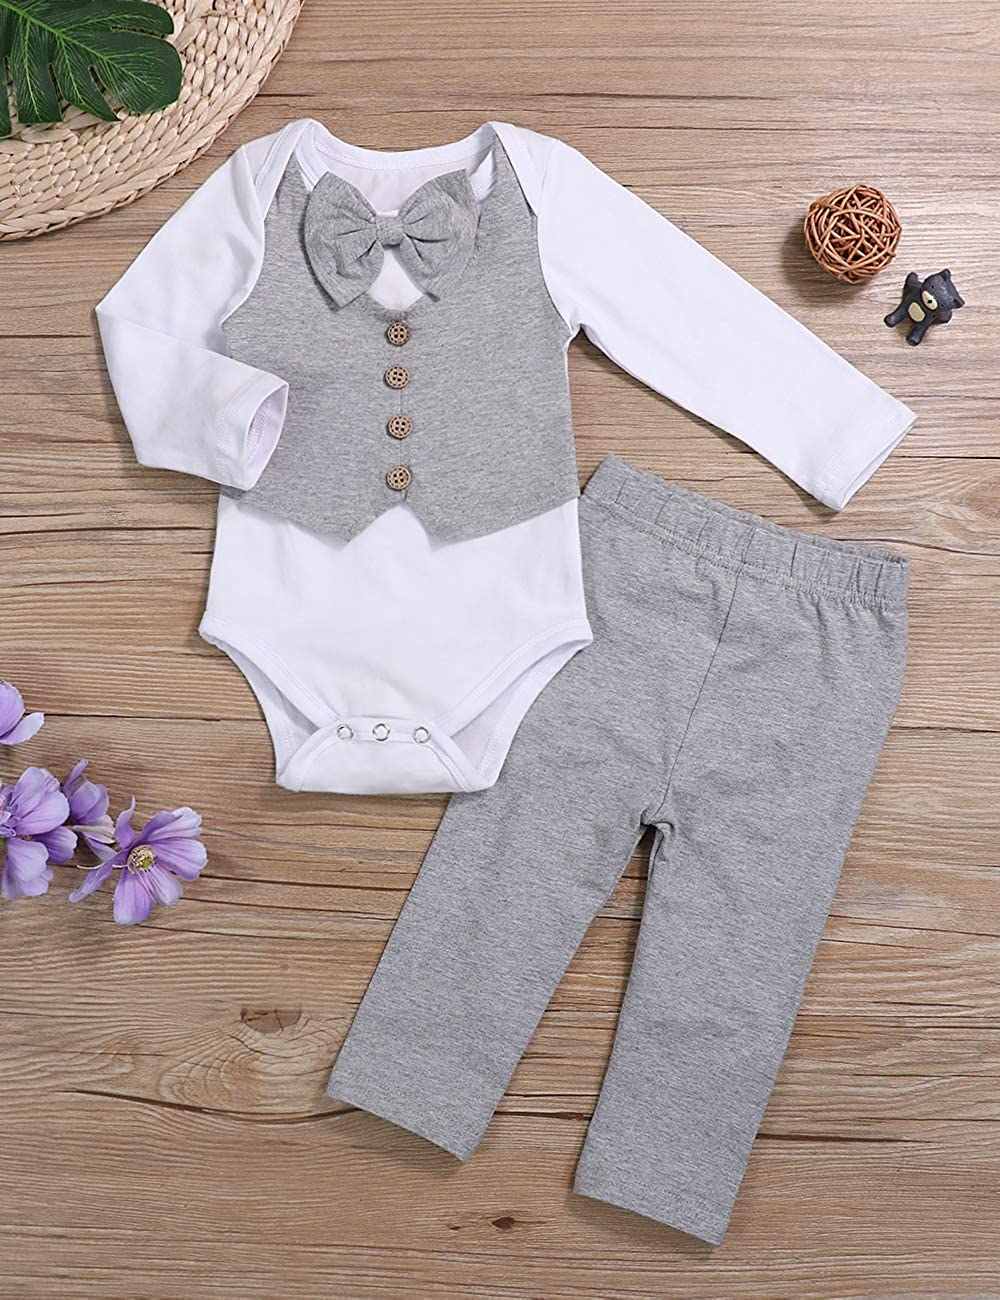 Newborn Baby Boy Clothes Gentleman Outfits Long Sleeve Romper Bowtie Tuxedo Suit